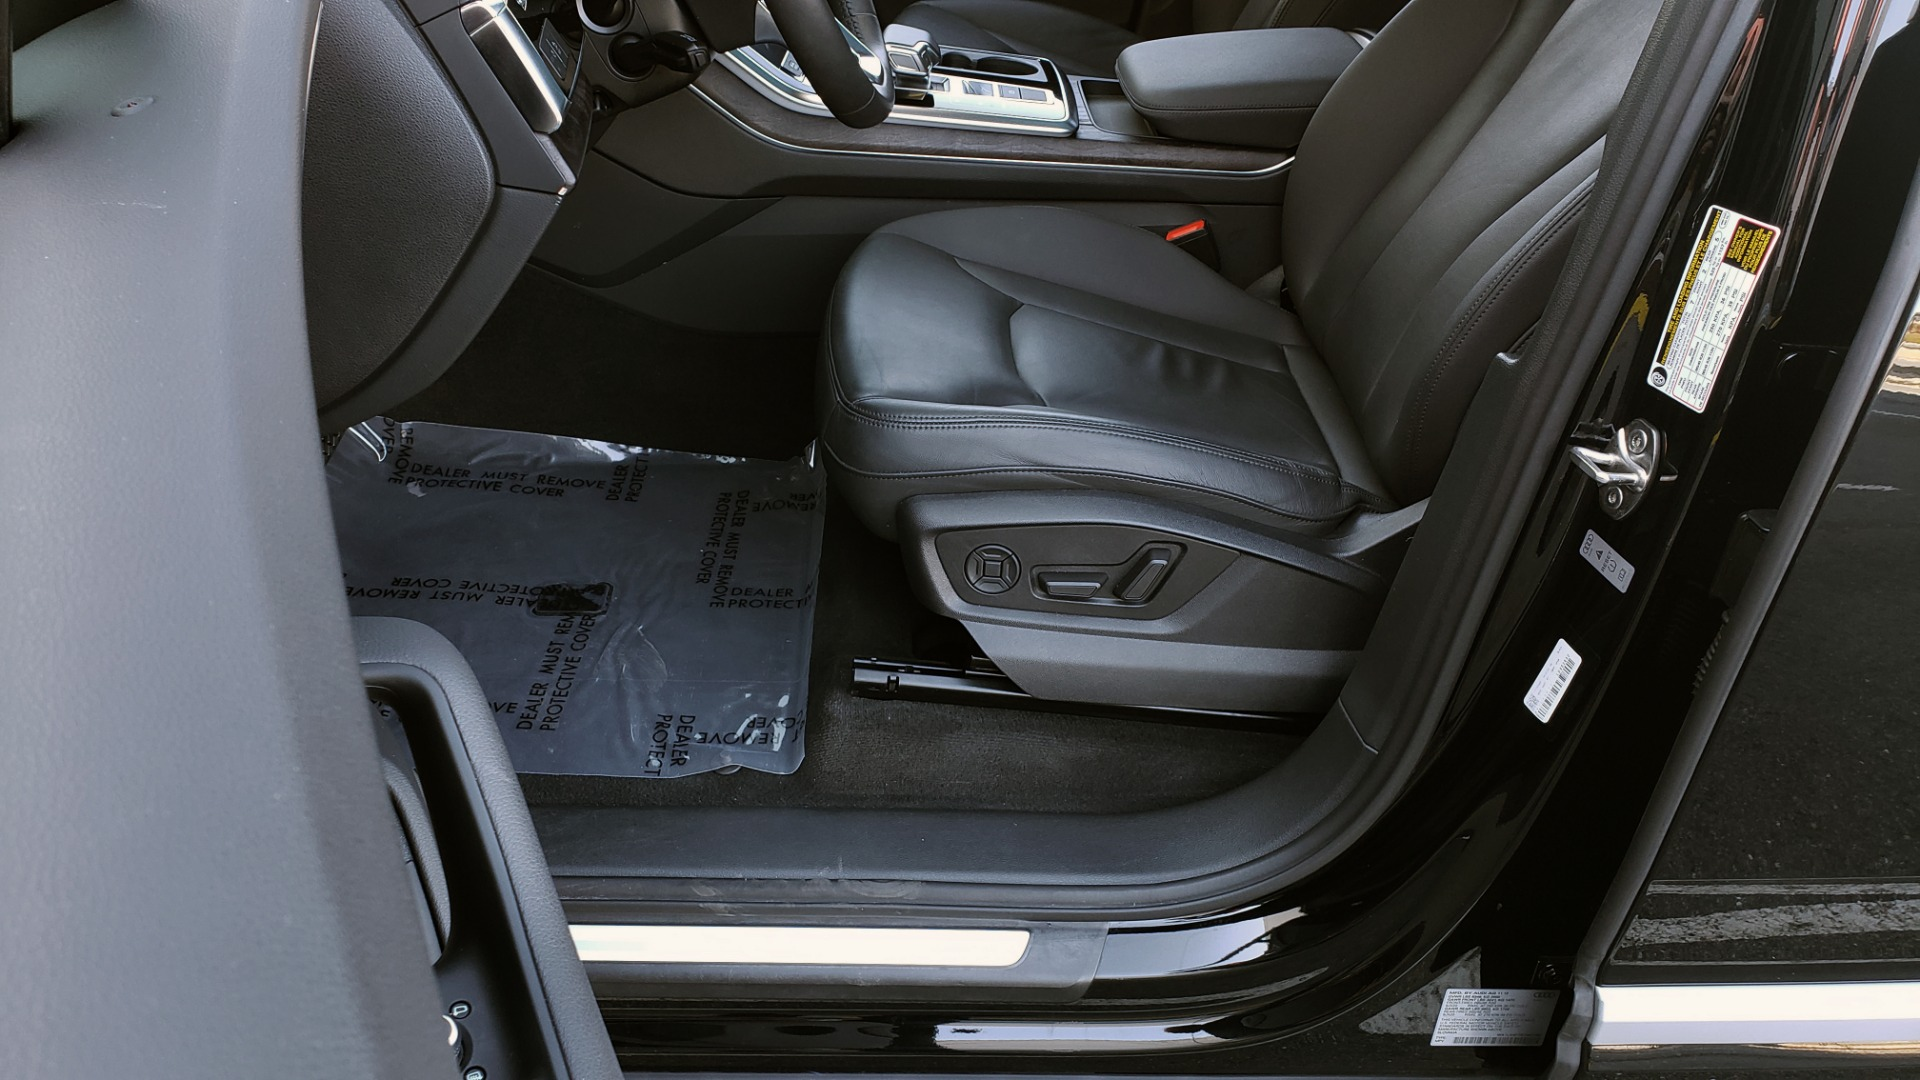 Used 2020 Audi Q7 PREMIUM PLUS / NAV / SUNROOF / 3-ROW / REARVIEW for sale $50,695 at Formula Imports in Charlotte NC 28227 37